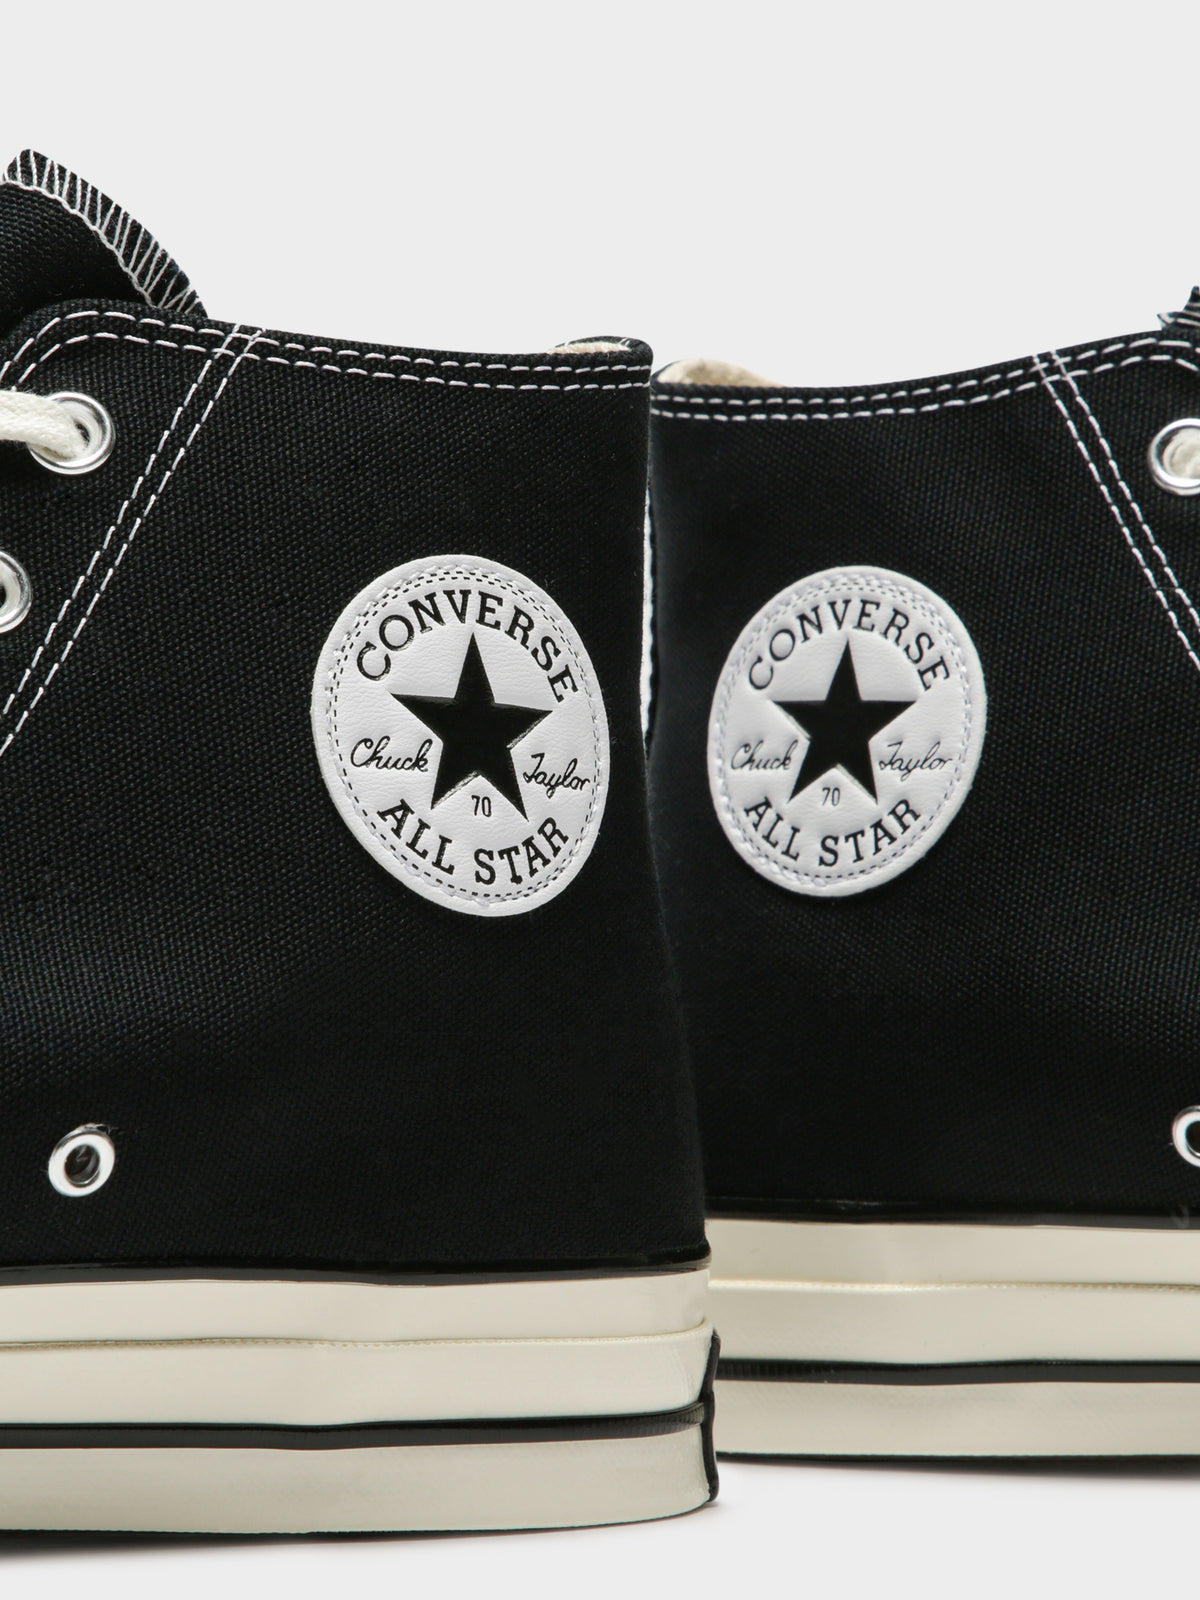 Unisex Chuck Taylor All Star 70 High Top Sneakers in Black